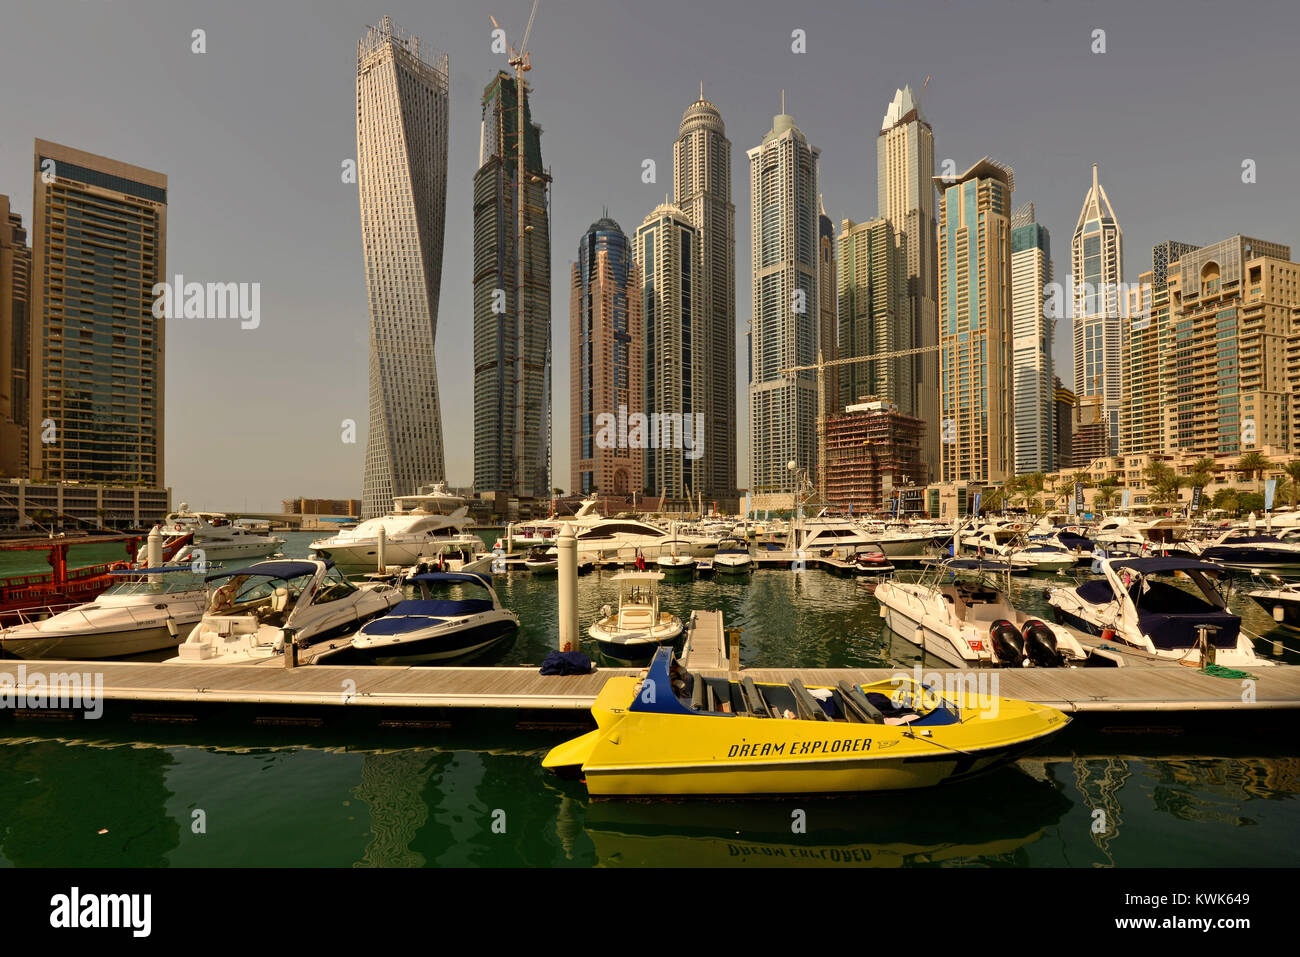 Dubaï Marina: the tallest block of residential skyscrapers - Stock Image